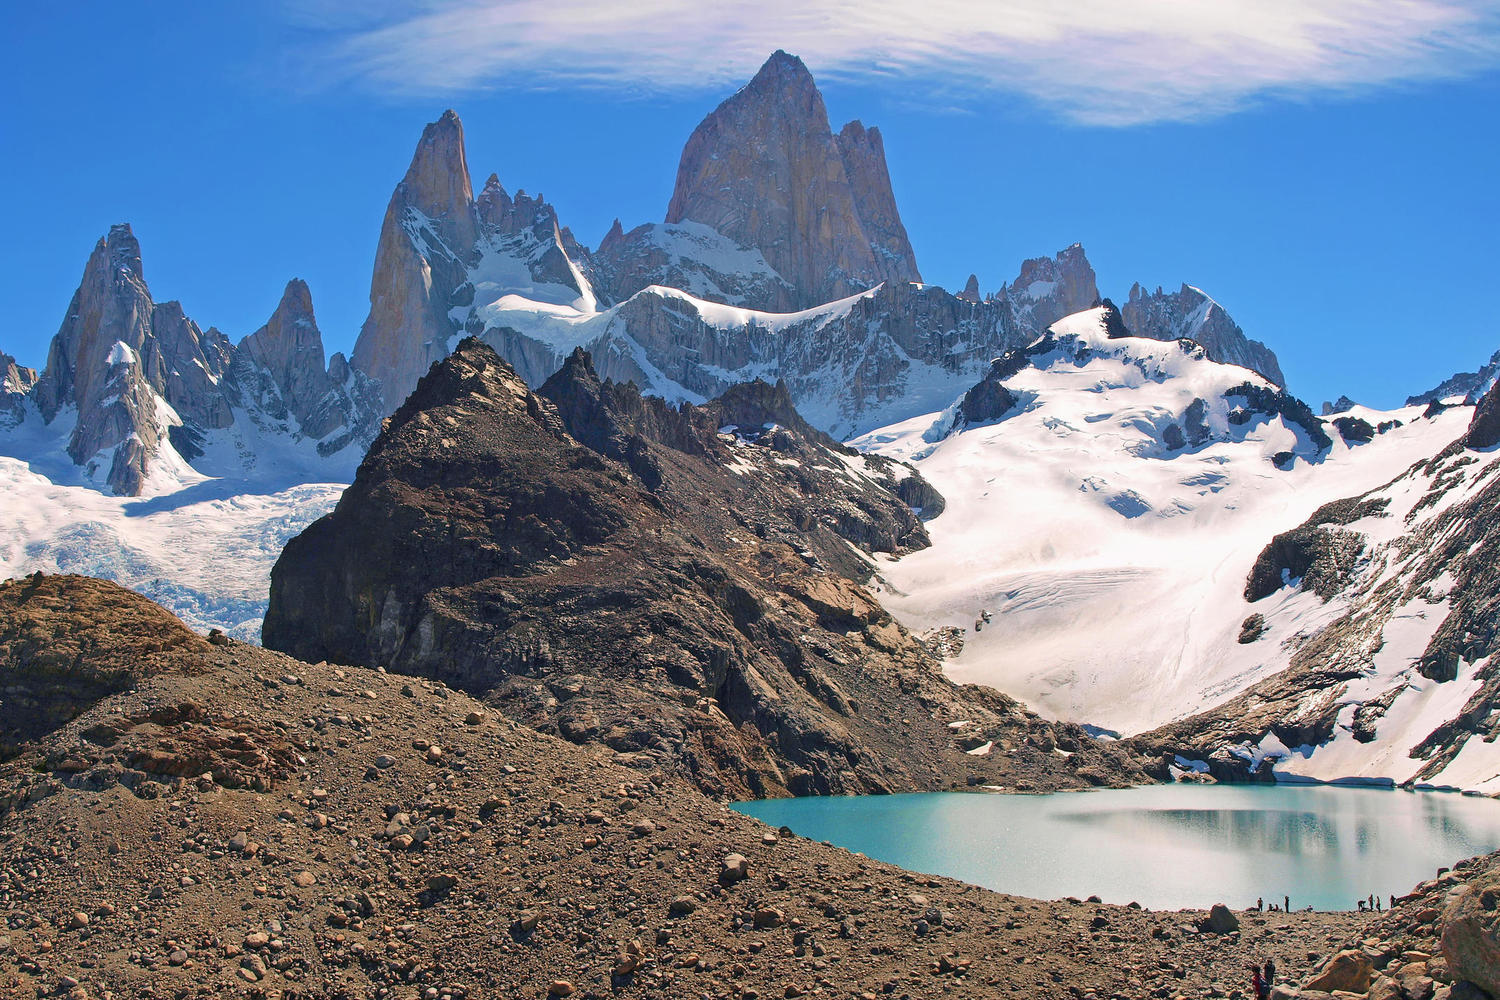 The Laguna de los Tres and Fitzroy mountain, Patagonia